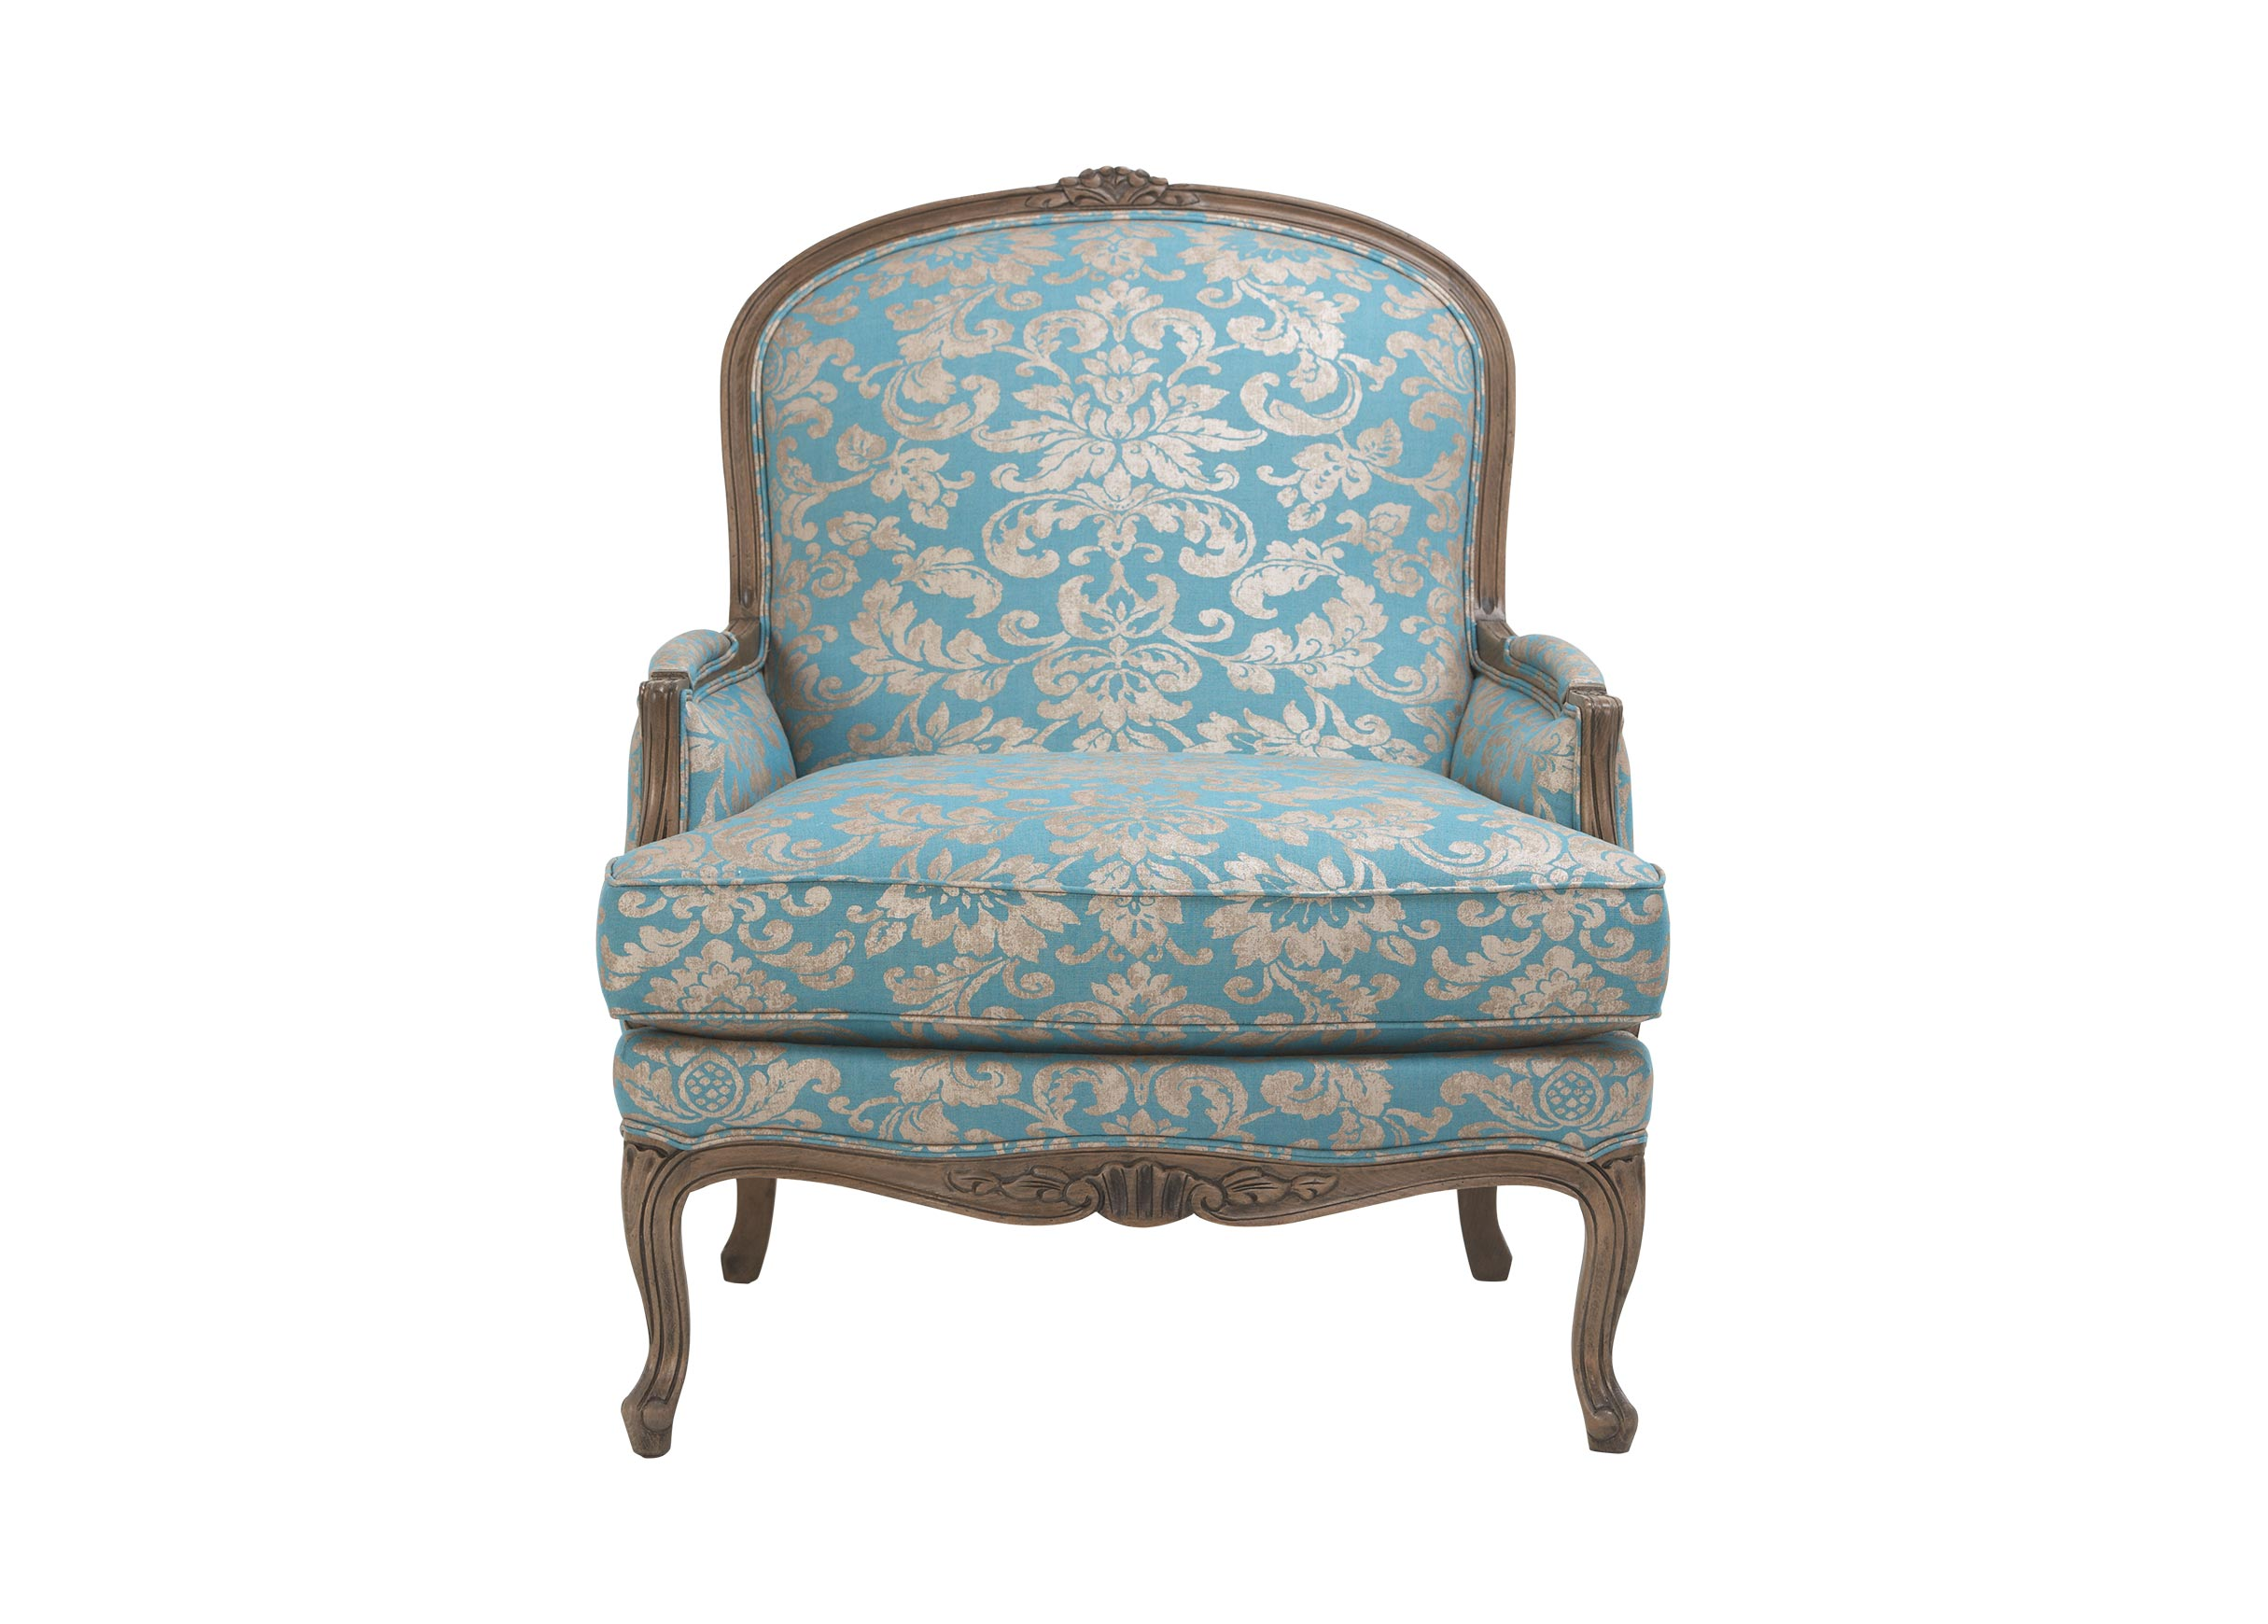 astonishing ethan allen furniture living room chairs | Lucian Chair | Chairs & Chaises | Ethan Allen